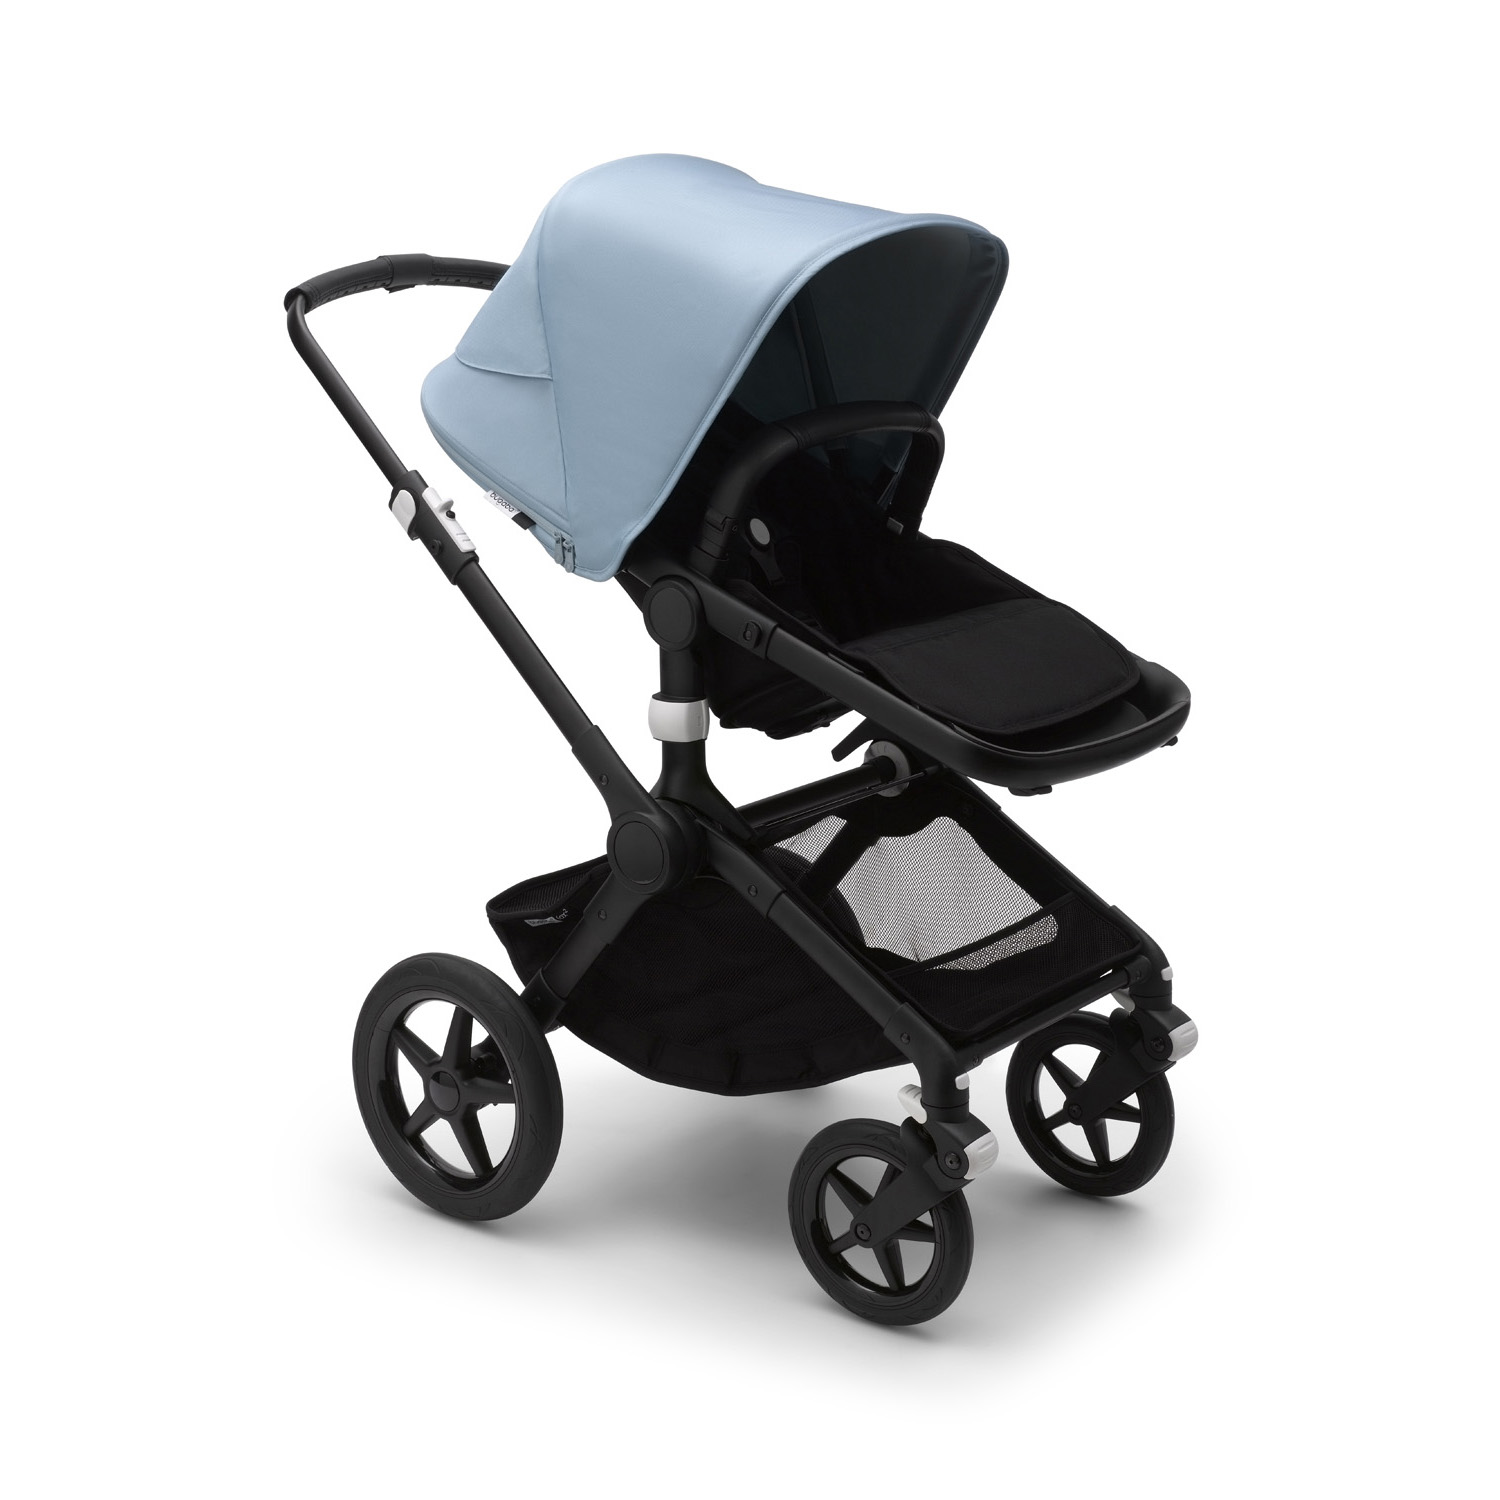 Mima Stroller Grey Bugaboo Fox 2 Stroller With Black Chassis Babyland